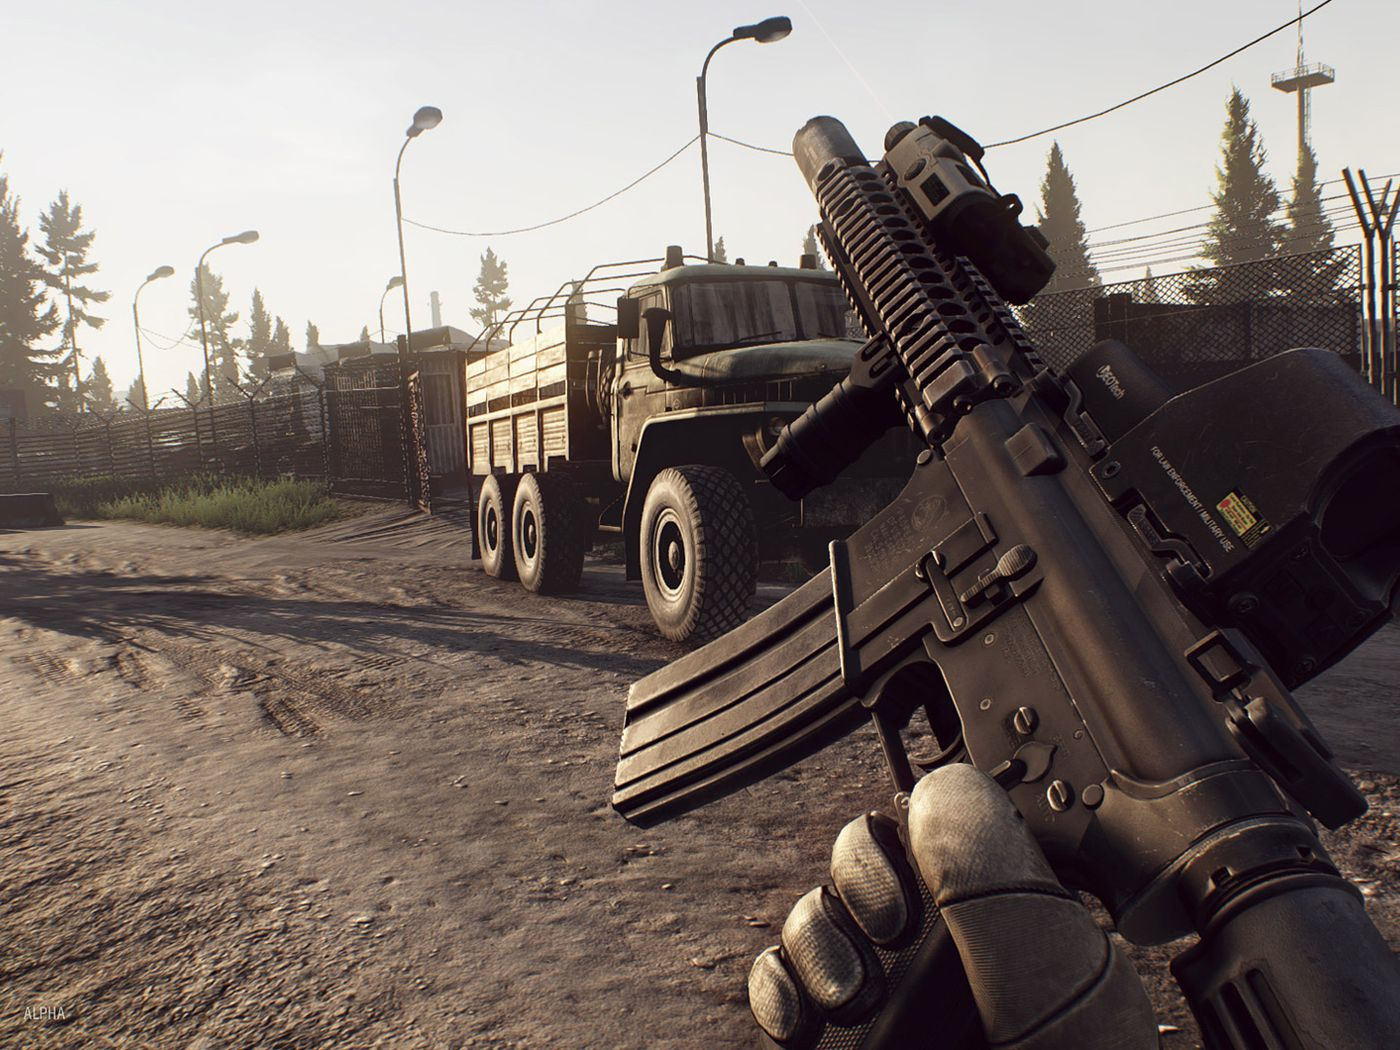 If you play Escape from Tarkov there's 1M in-game cash waiting for you -  Polygon